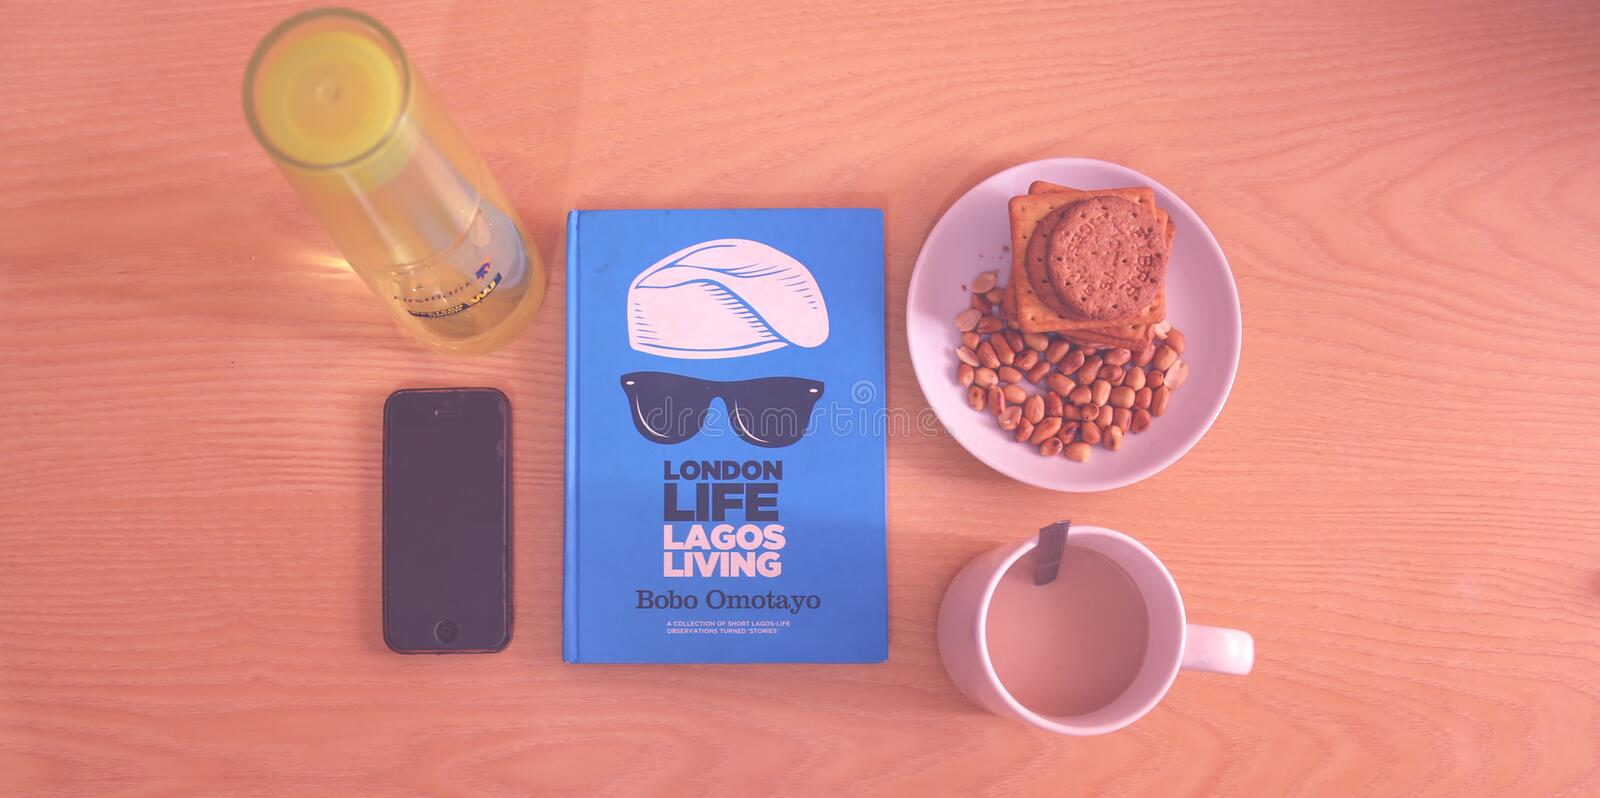 Peanuts And Biscuits In White Ceramic Plate Beside White Ceramic Mug Near Lagos Living Book Free Public Domain Cc0 Image